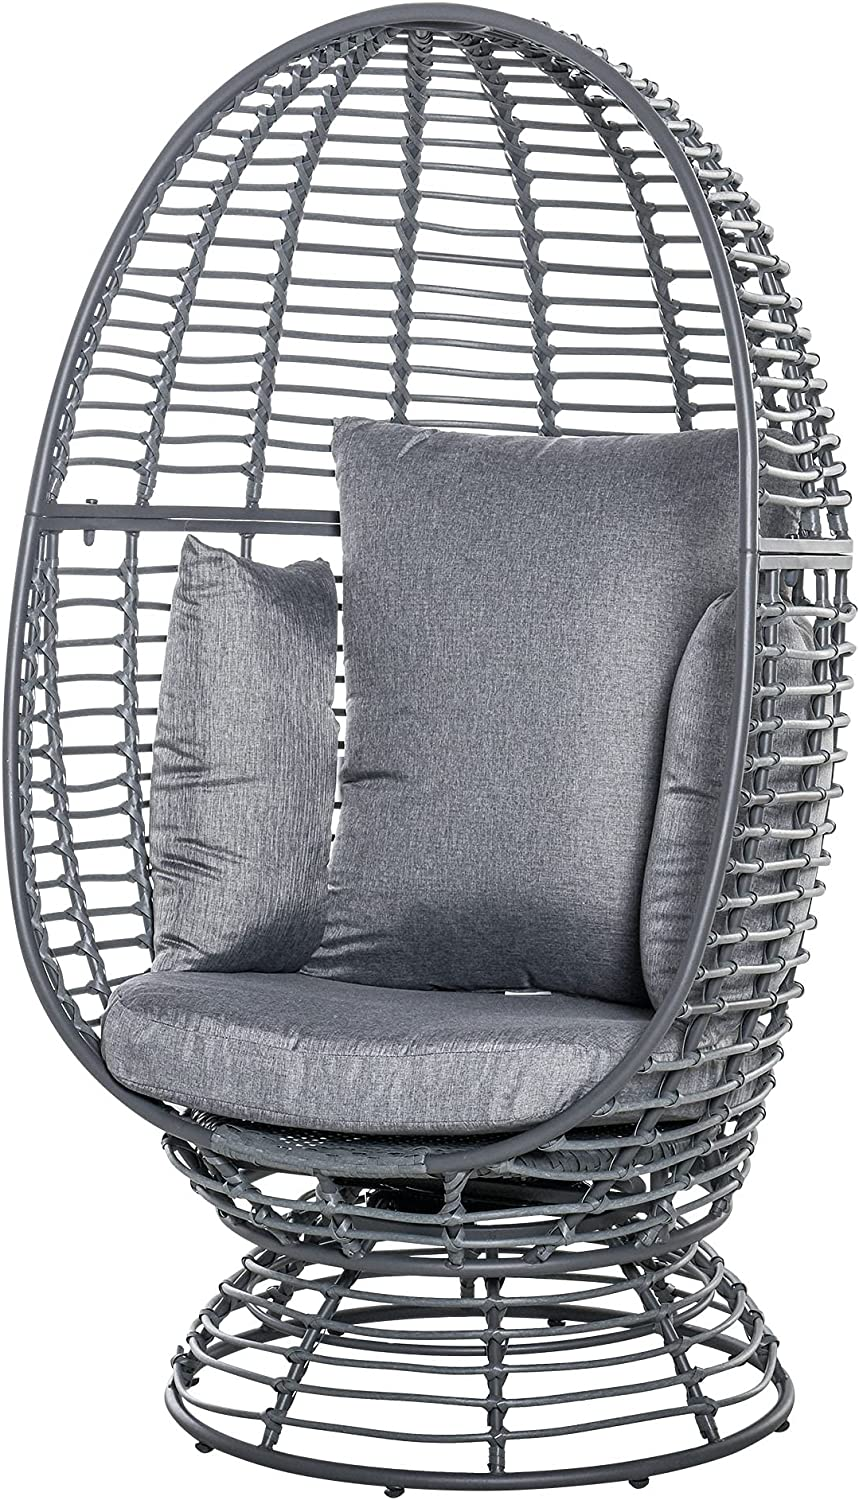 Outsunny Outdoor Egg Bargain sale Spasm price Chair Rattan Wicker Bask Swivel Degree 360